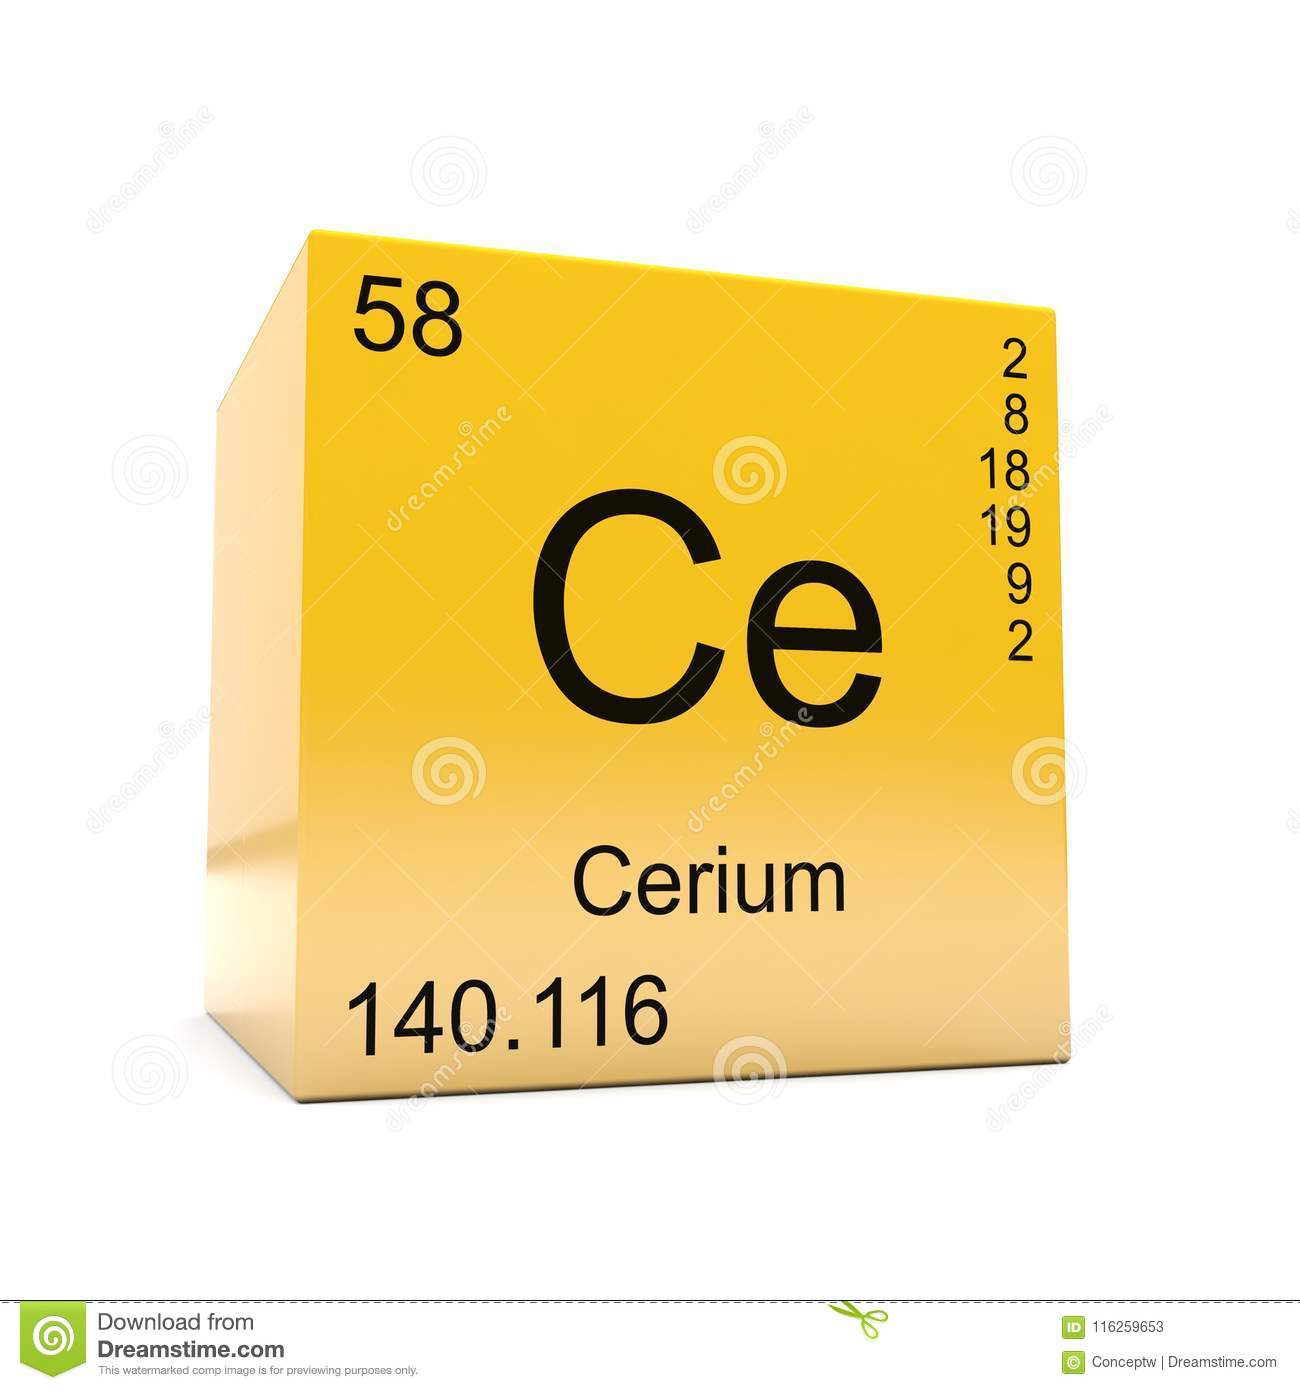 Cerium Chemical Element Symbol From Periodic Table Stock